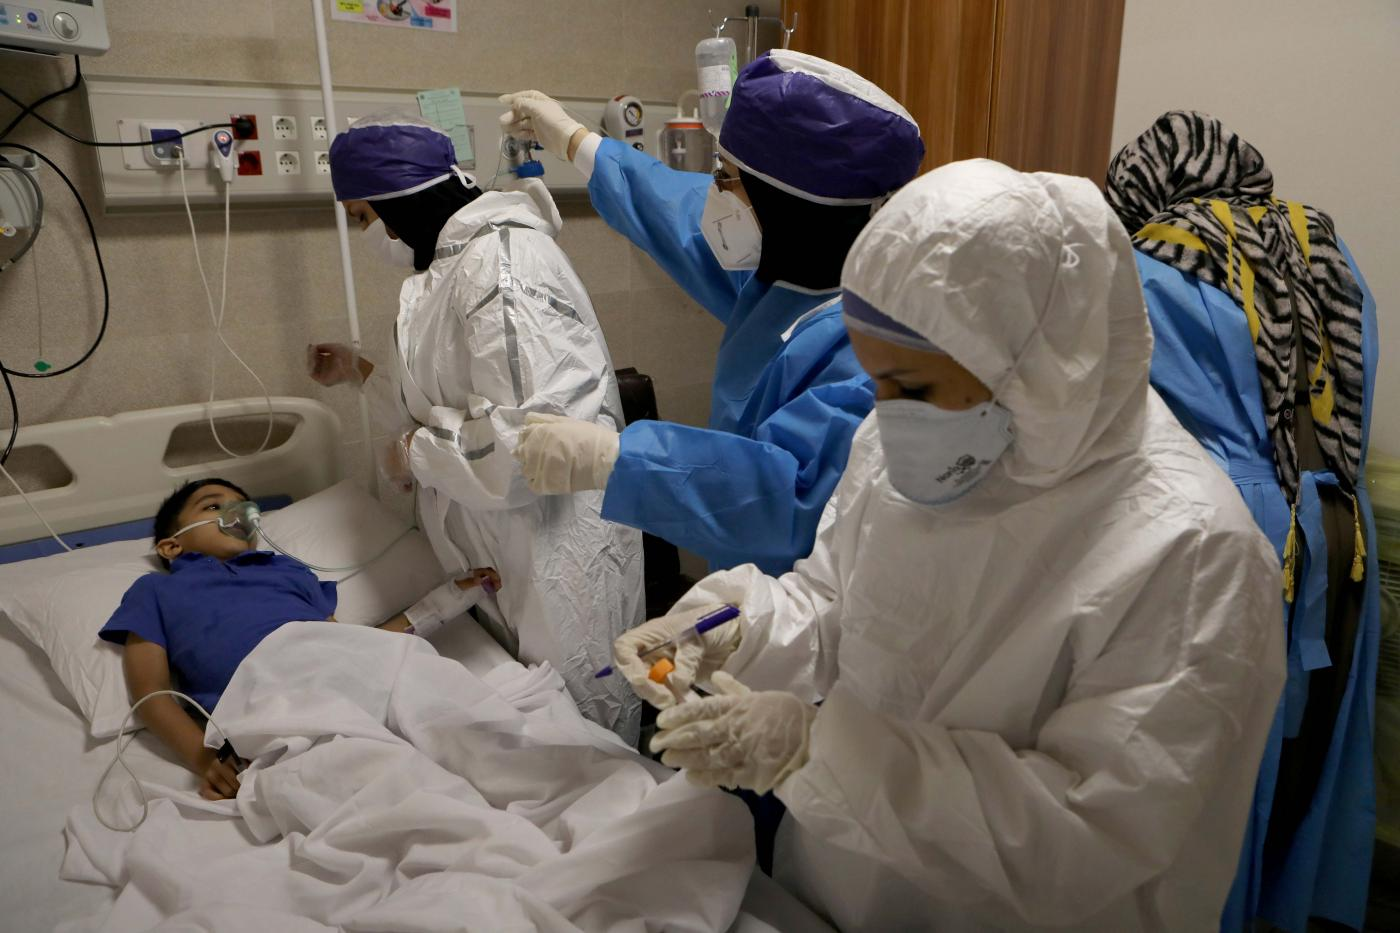 Iran's total number of total Covid-19 cases since the outbreak began in late February has now risen to 314,786.